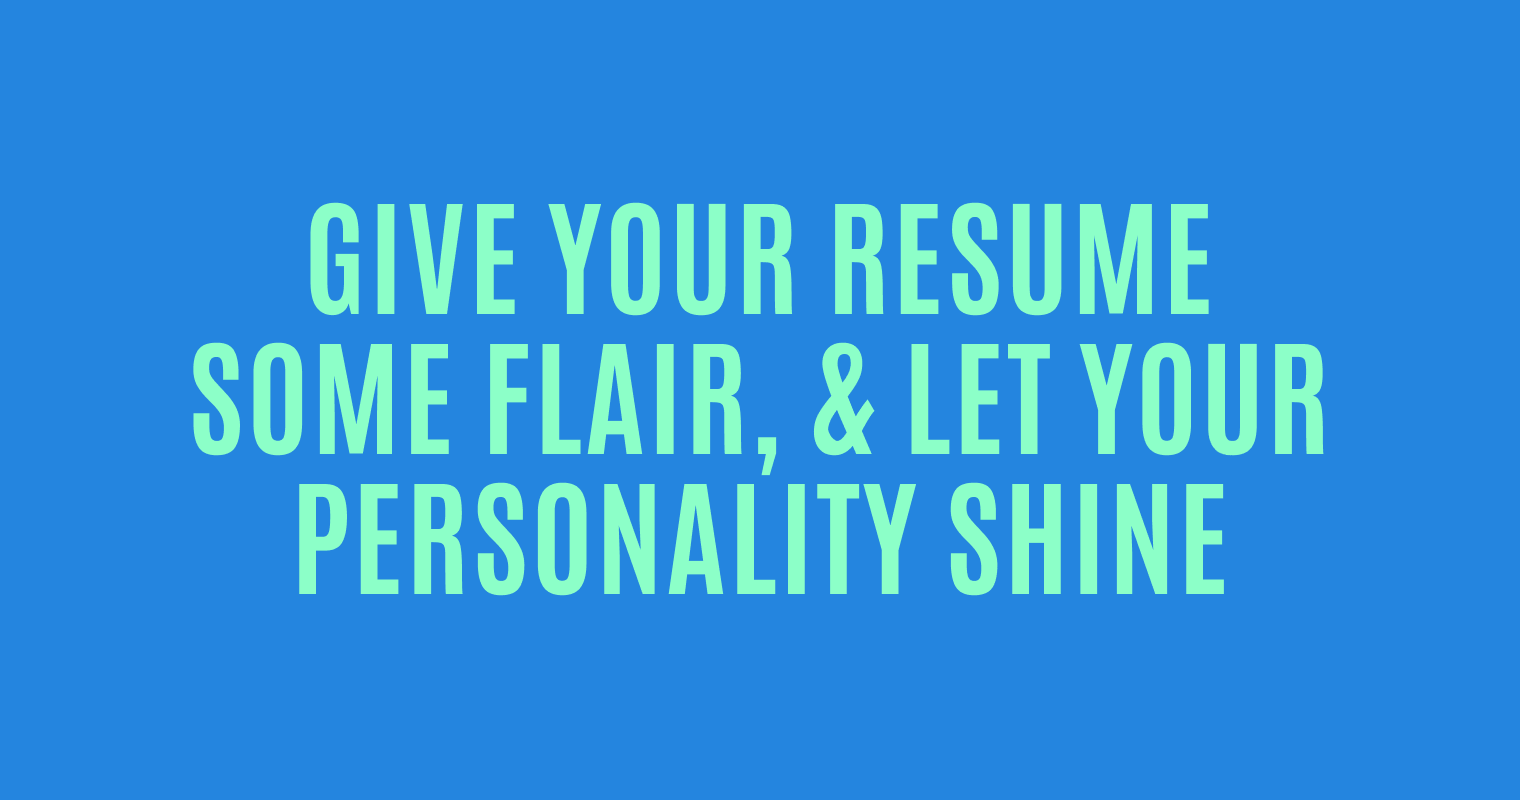 Graphic design resume: Give your resume some flair, and let your personality shine.